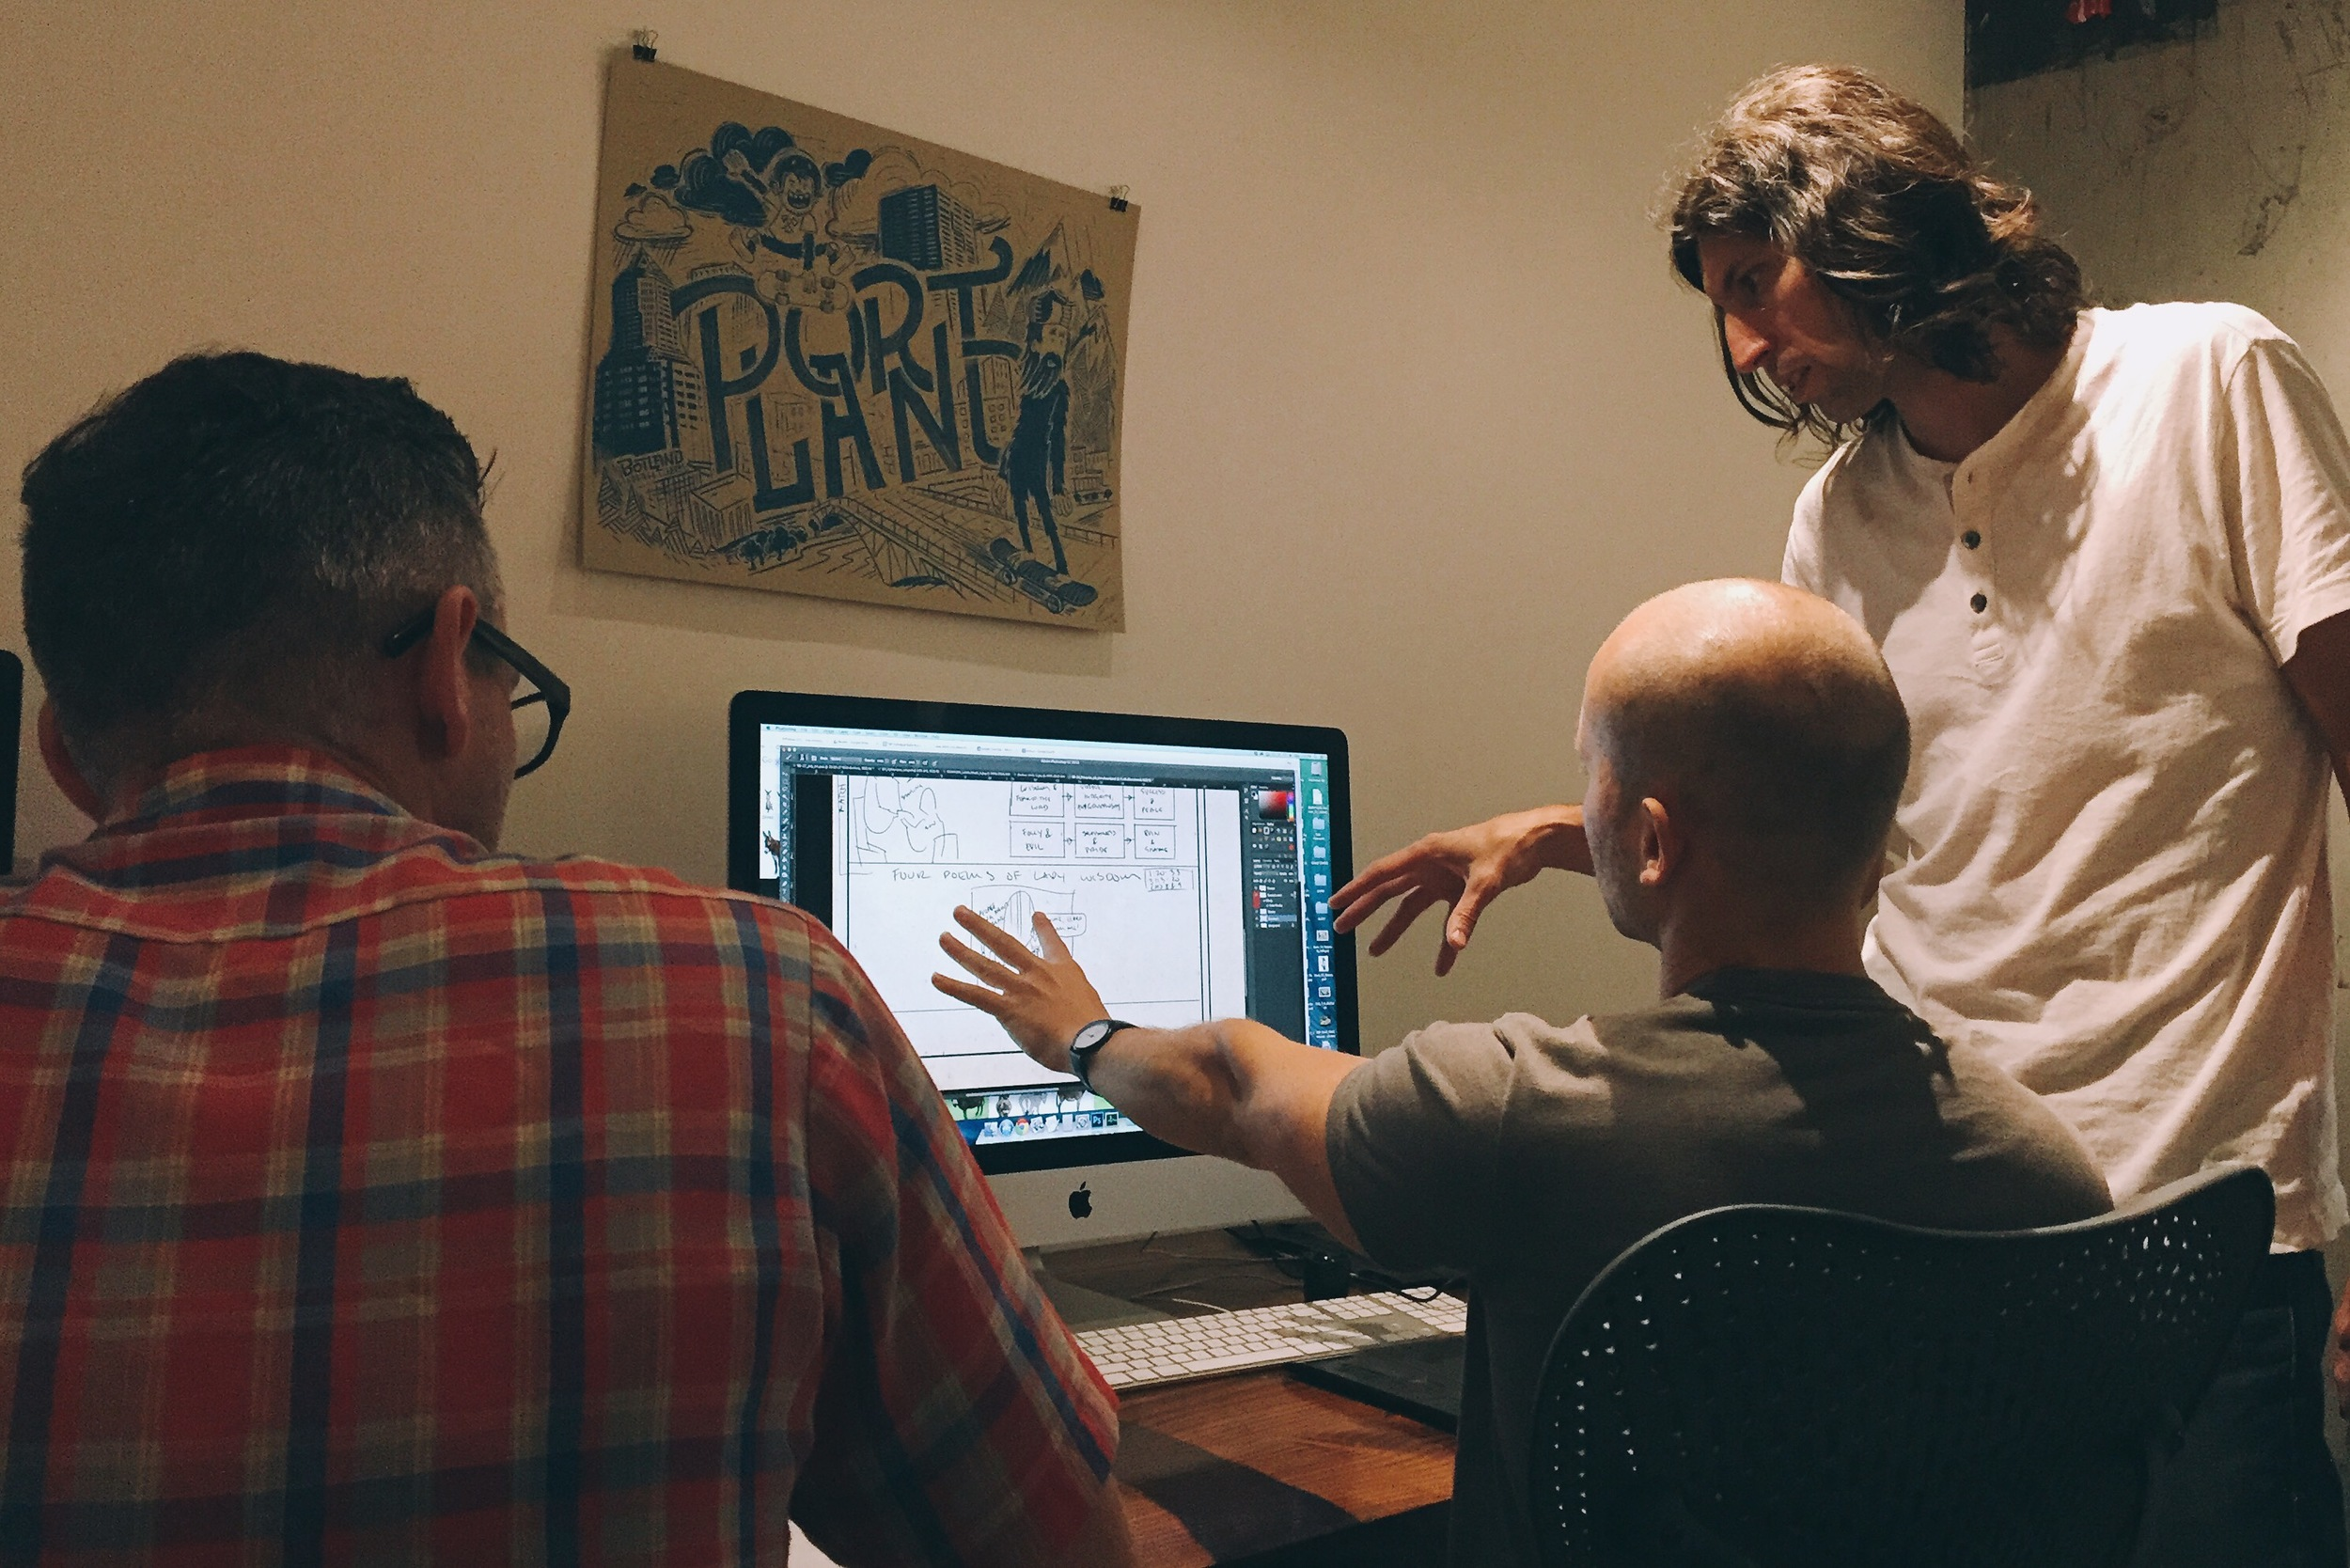 Tim and Jon now bring the video's outline to Mac, who does a rough sketch before polishing it up and sending it to the animators.